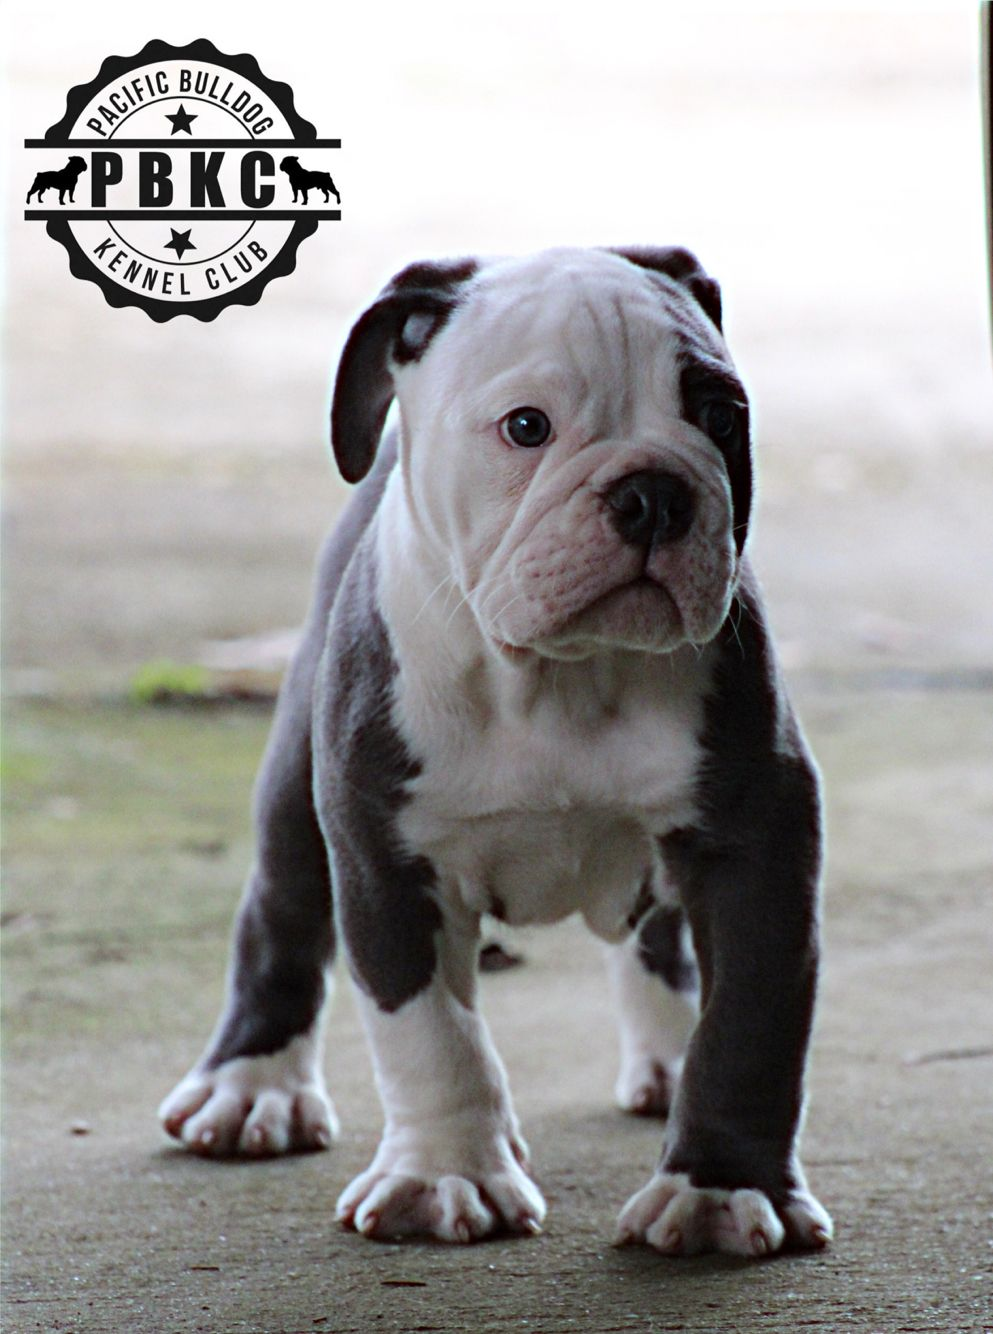 Legend Pacificbulldog Pbkc Abkc Bulldog Bully Breeds Dogs